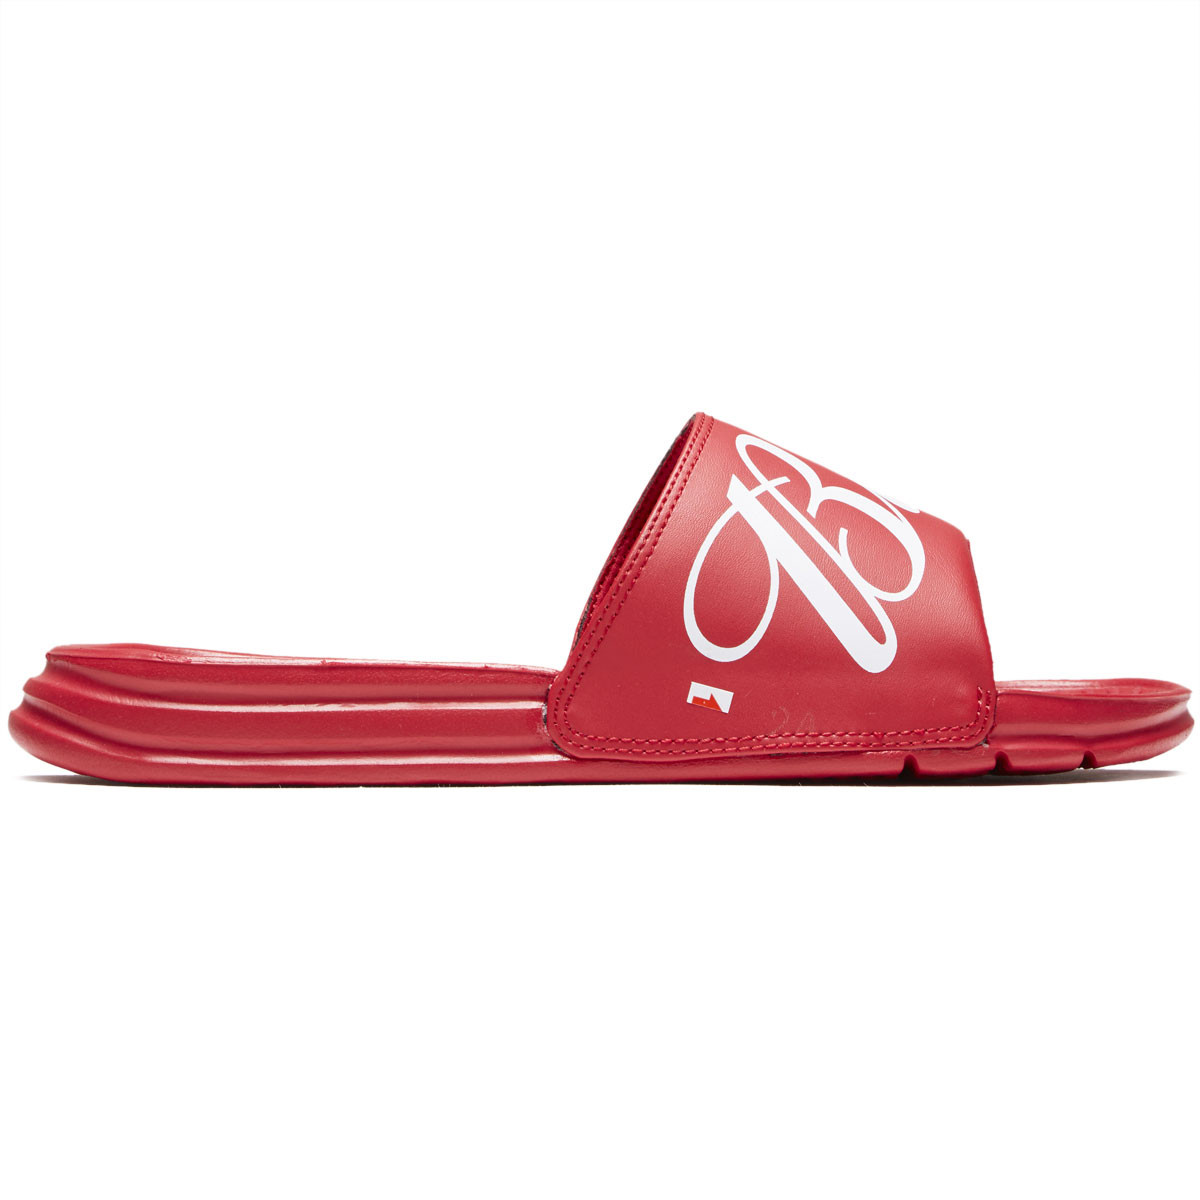 a6f78c8a87 HUF x Budweiser Slide Shoes - Red - 10.0